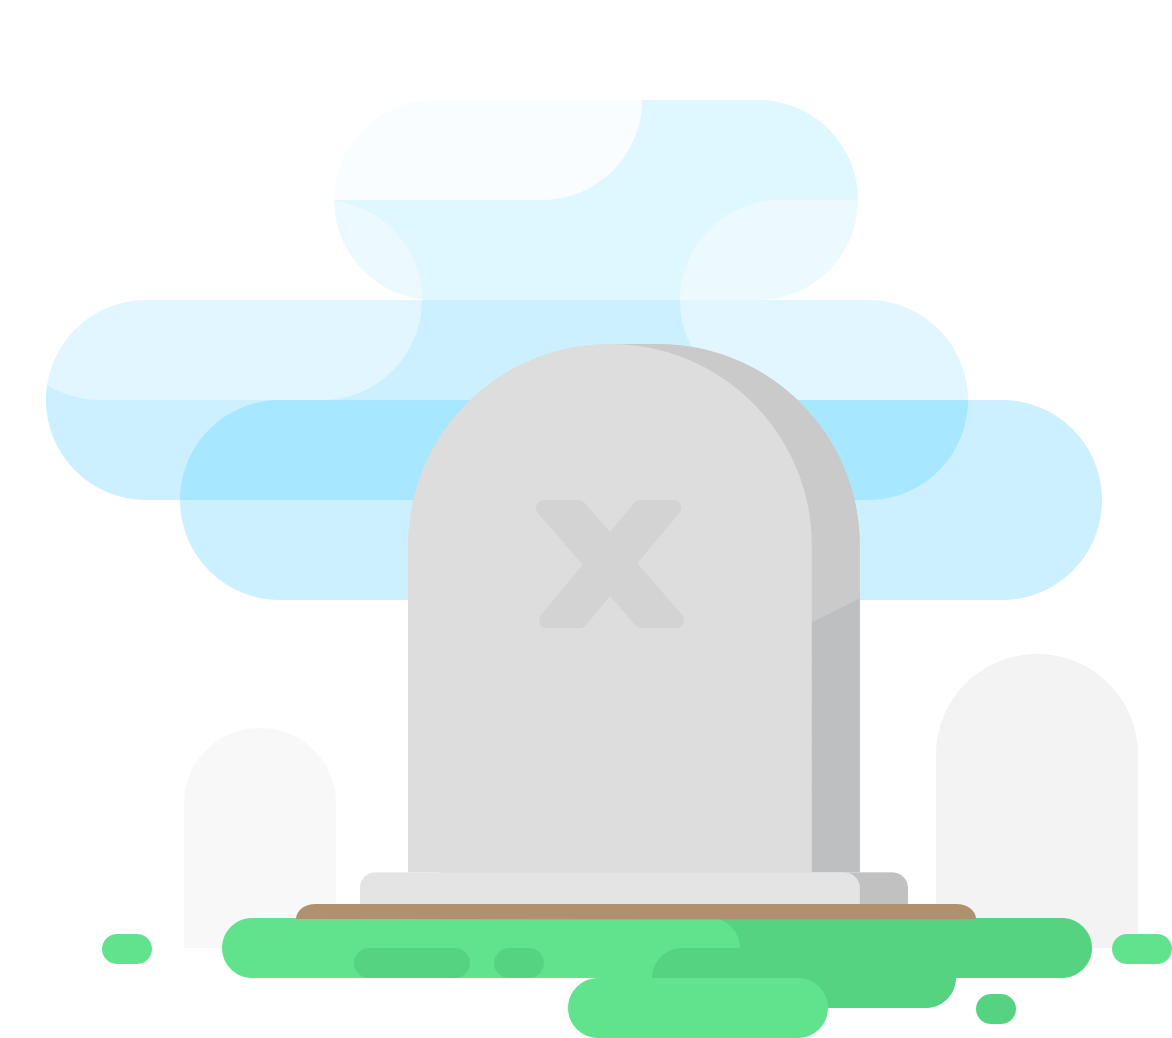 Excel sheet tombstone illustration